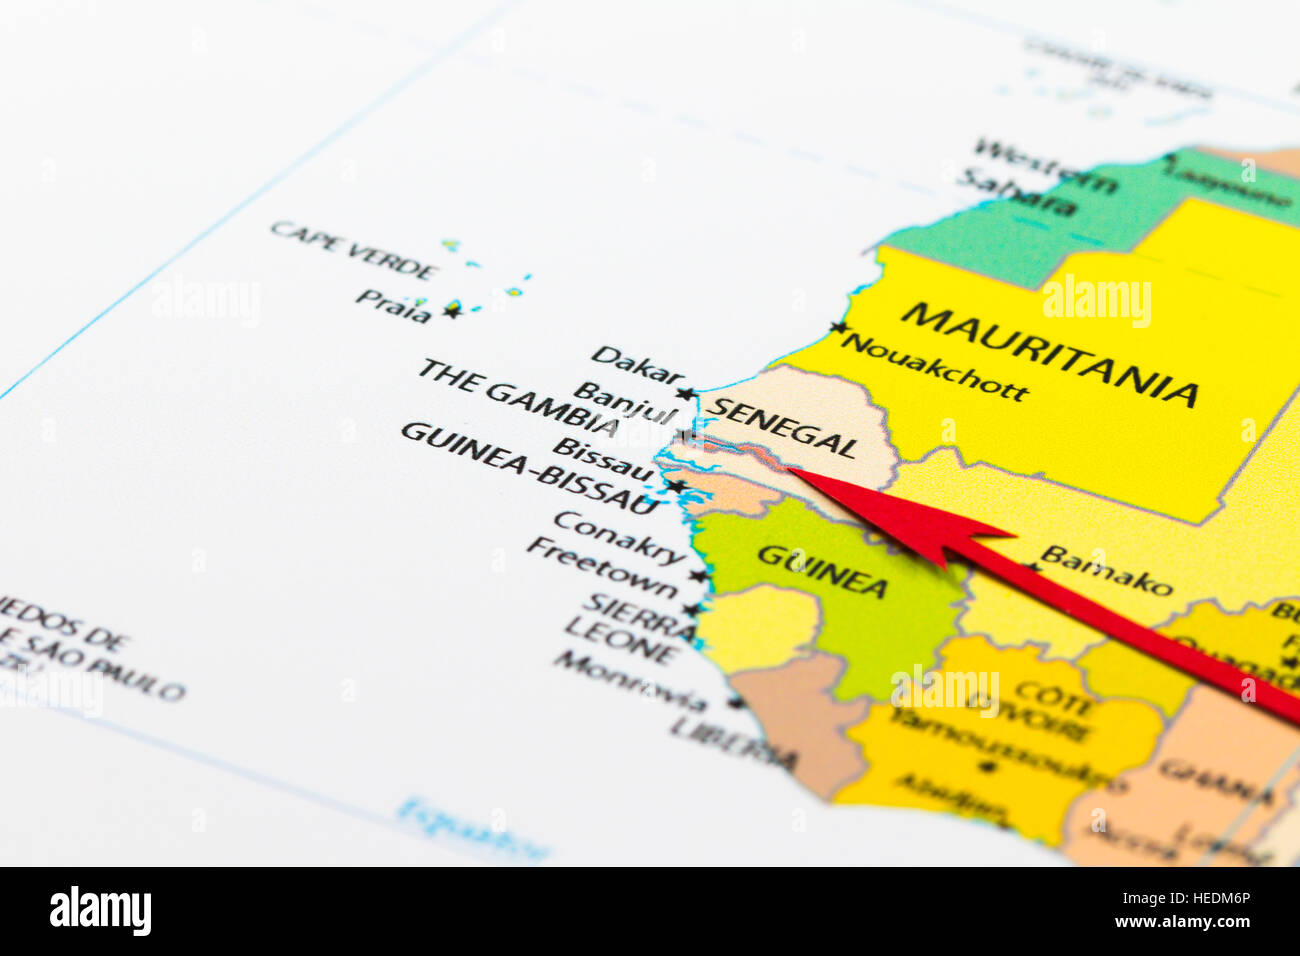 Red arrow pointing The Gambia on the map of Africa continent Stock